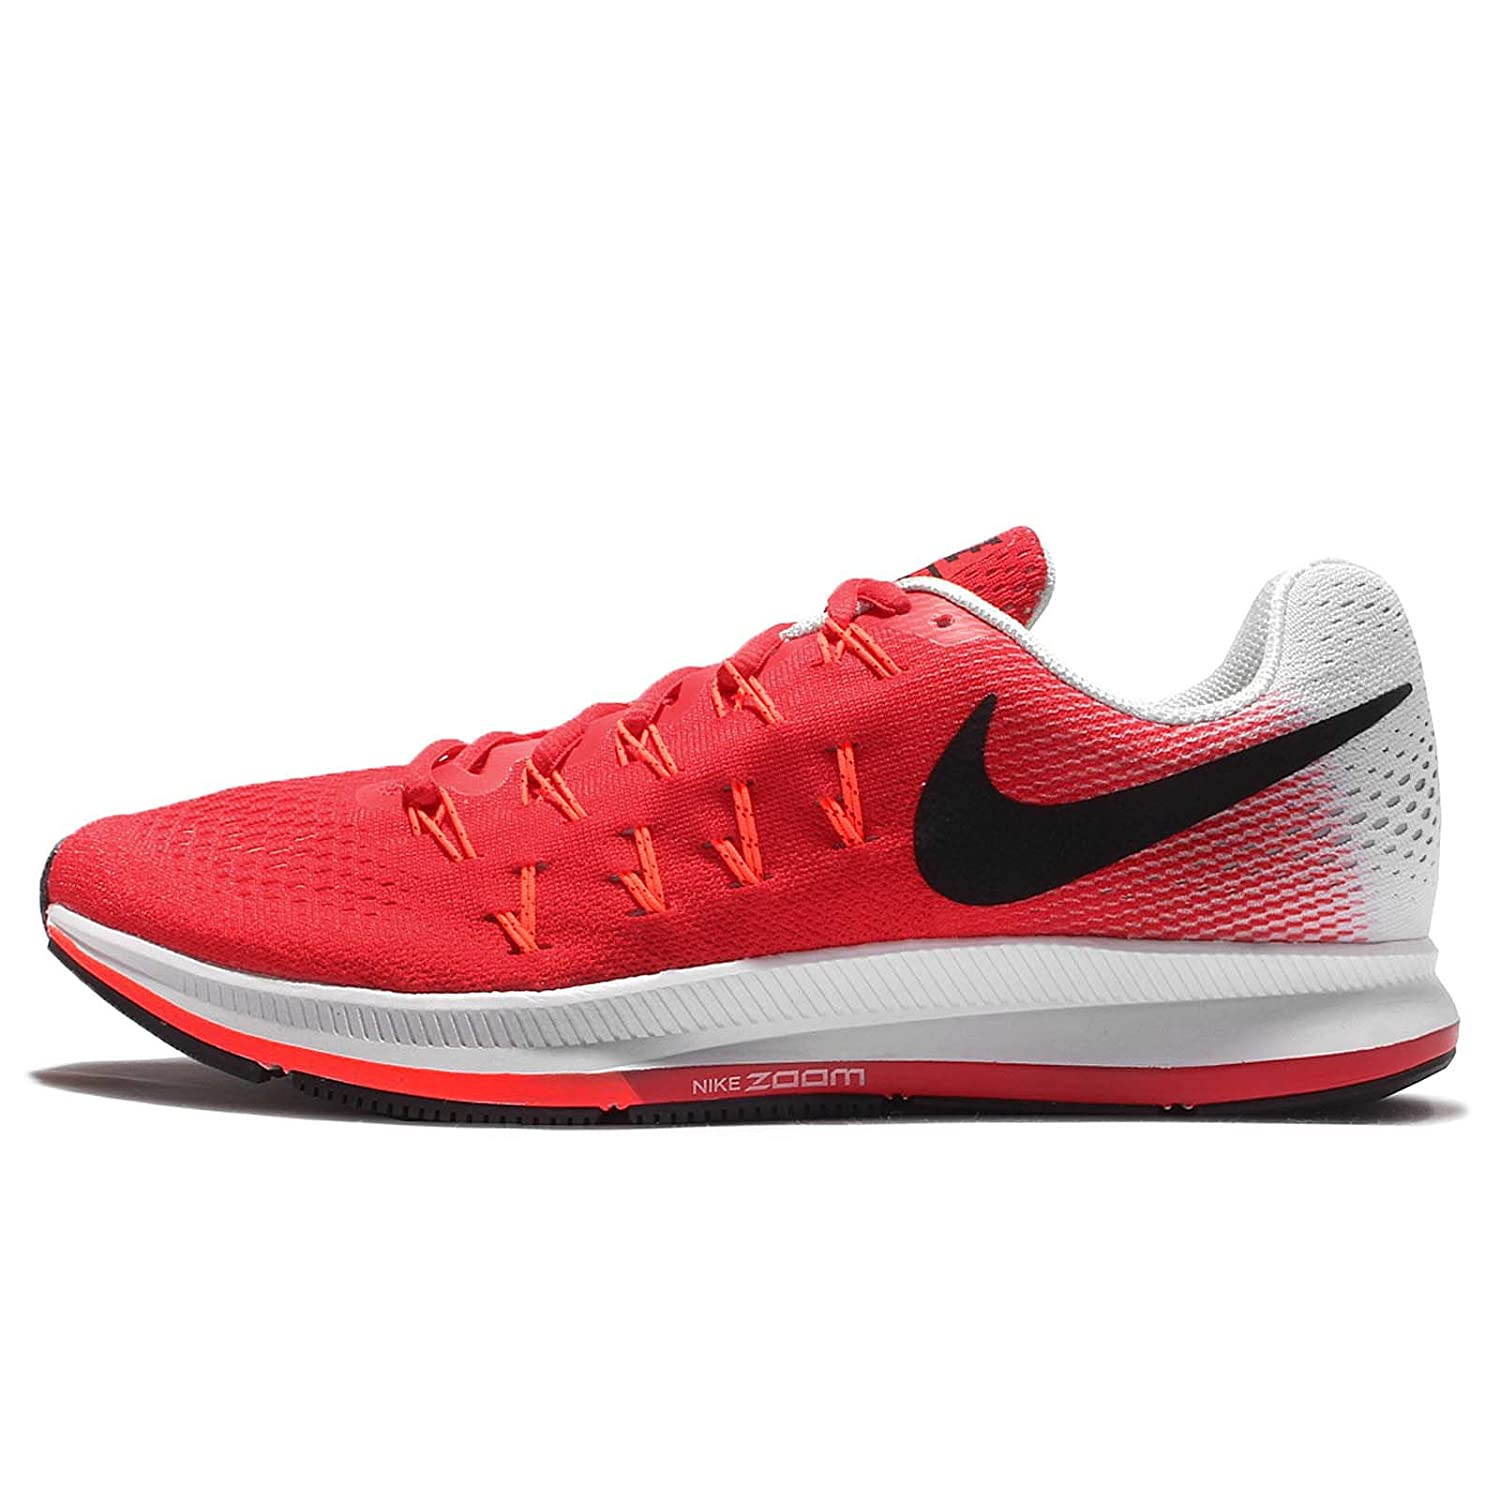 Nike Men's Air Zoom Pegasus 33 B017SN62O4 8.5 D(M) US|Action Red/Black-pure Platinum-total Crimson